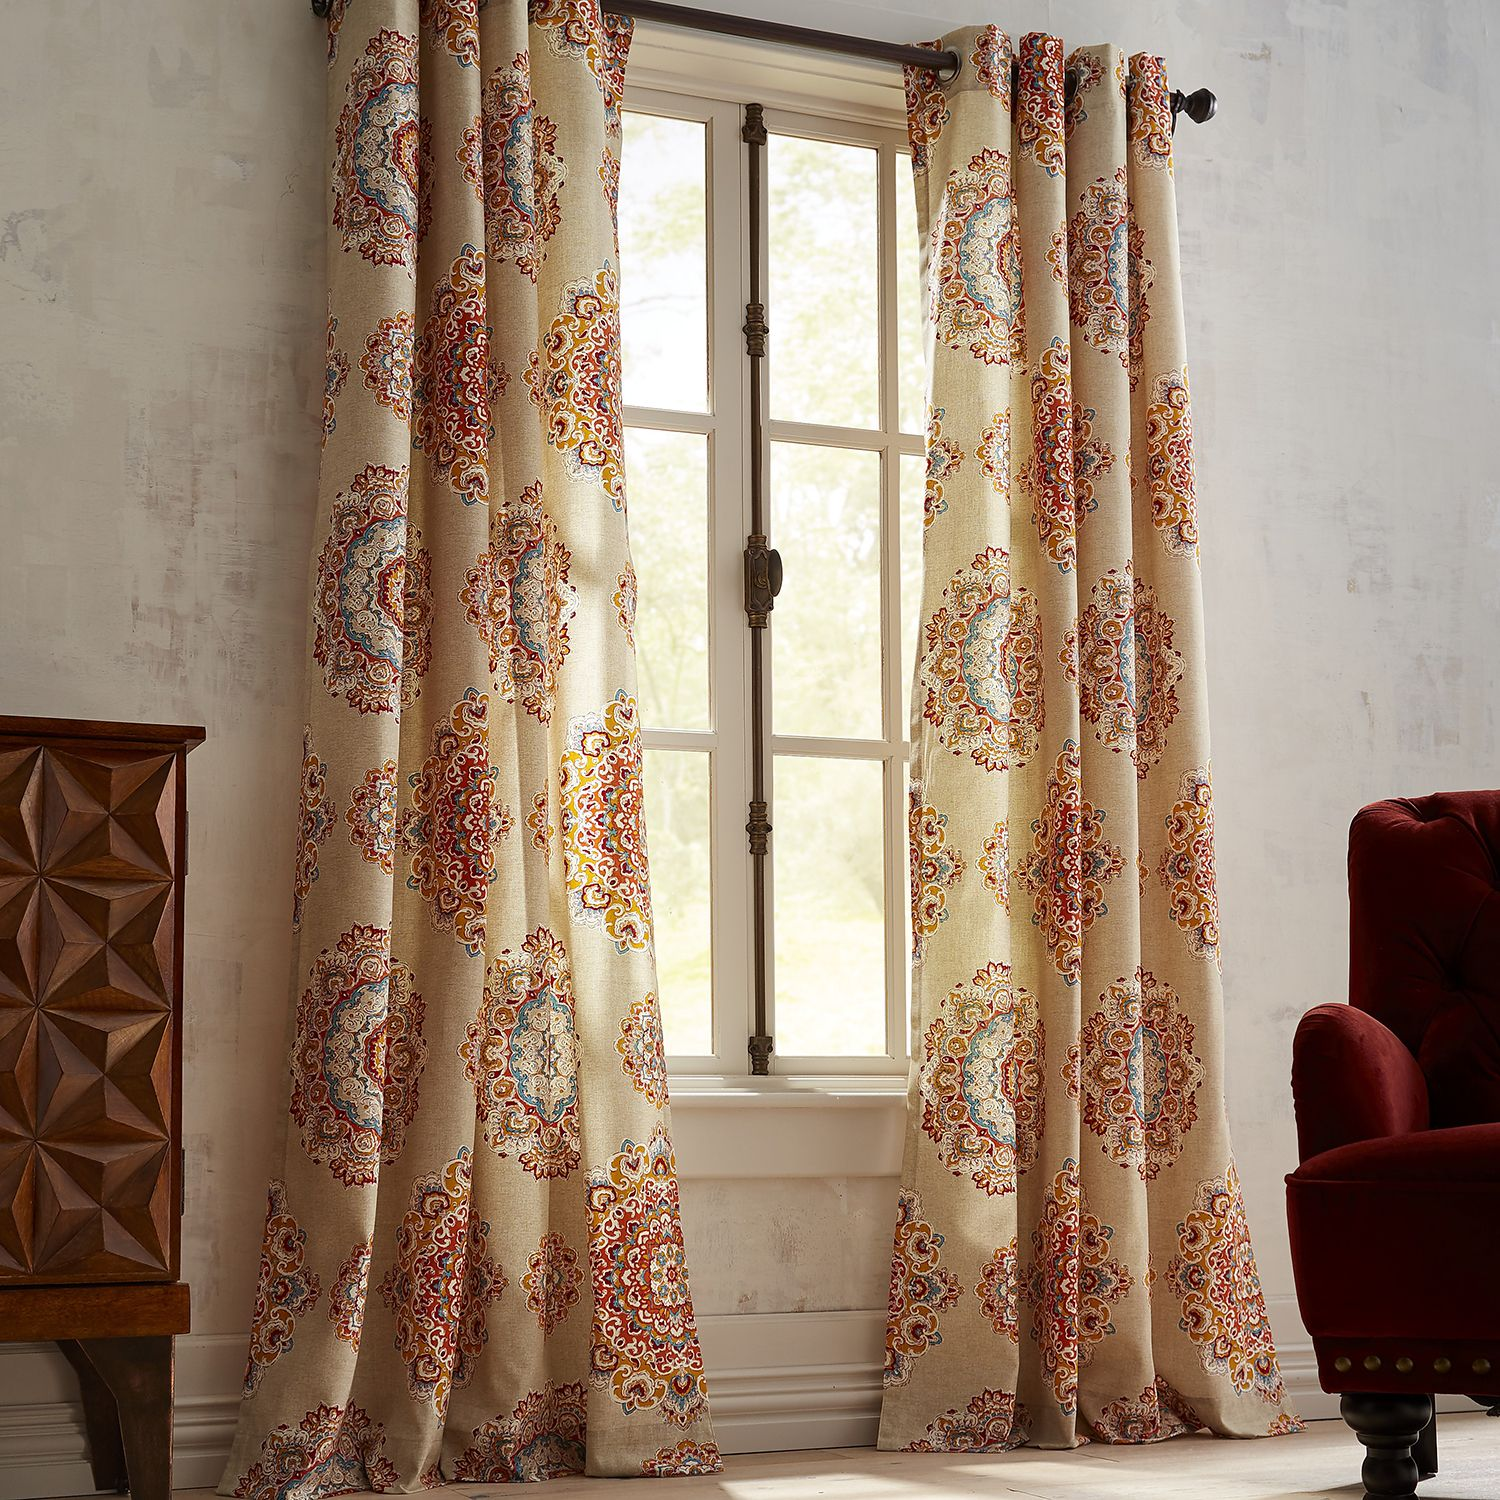 fancy plush design moorish tile curtain. Pier 1 curtains Suzani comes from the Persian word for  needlework and is associated specifically with tribal embroideries of Central Asia Jewel Curtain 108 Window Treatments Curtains